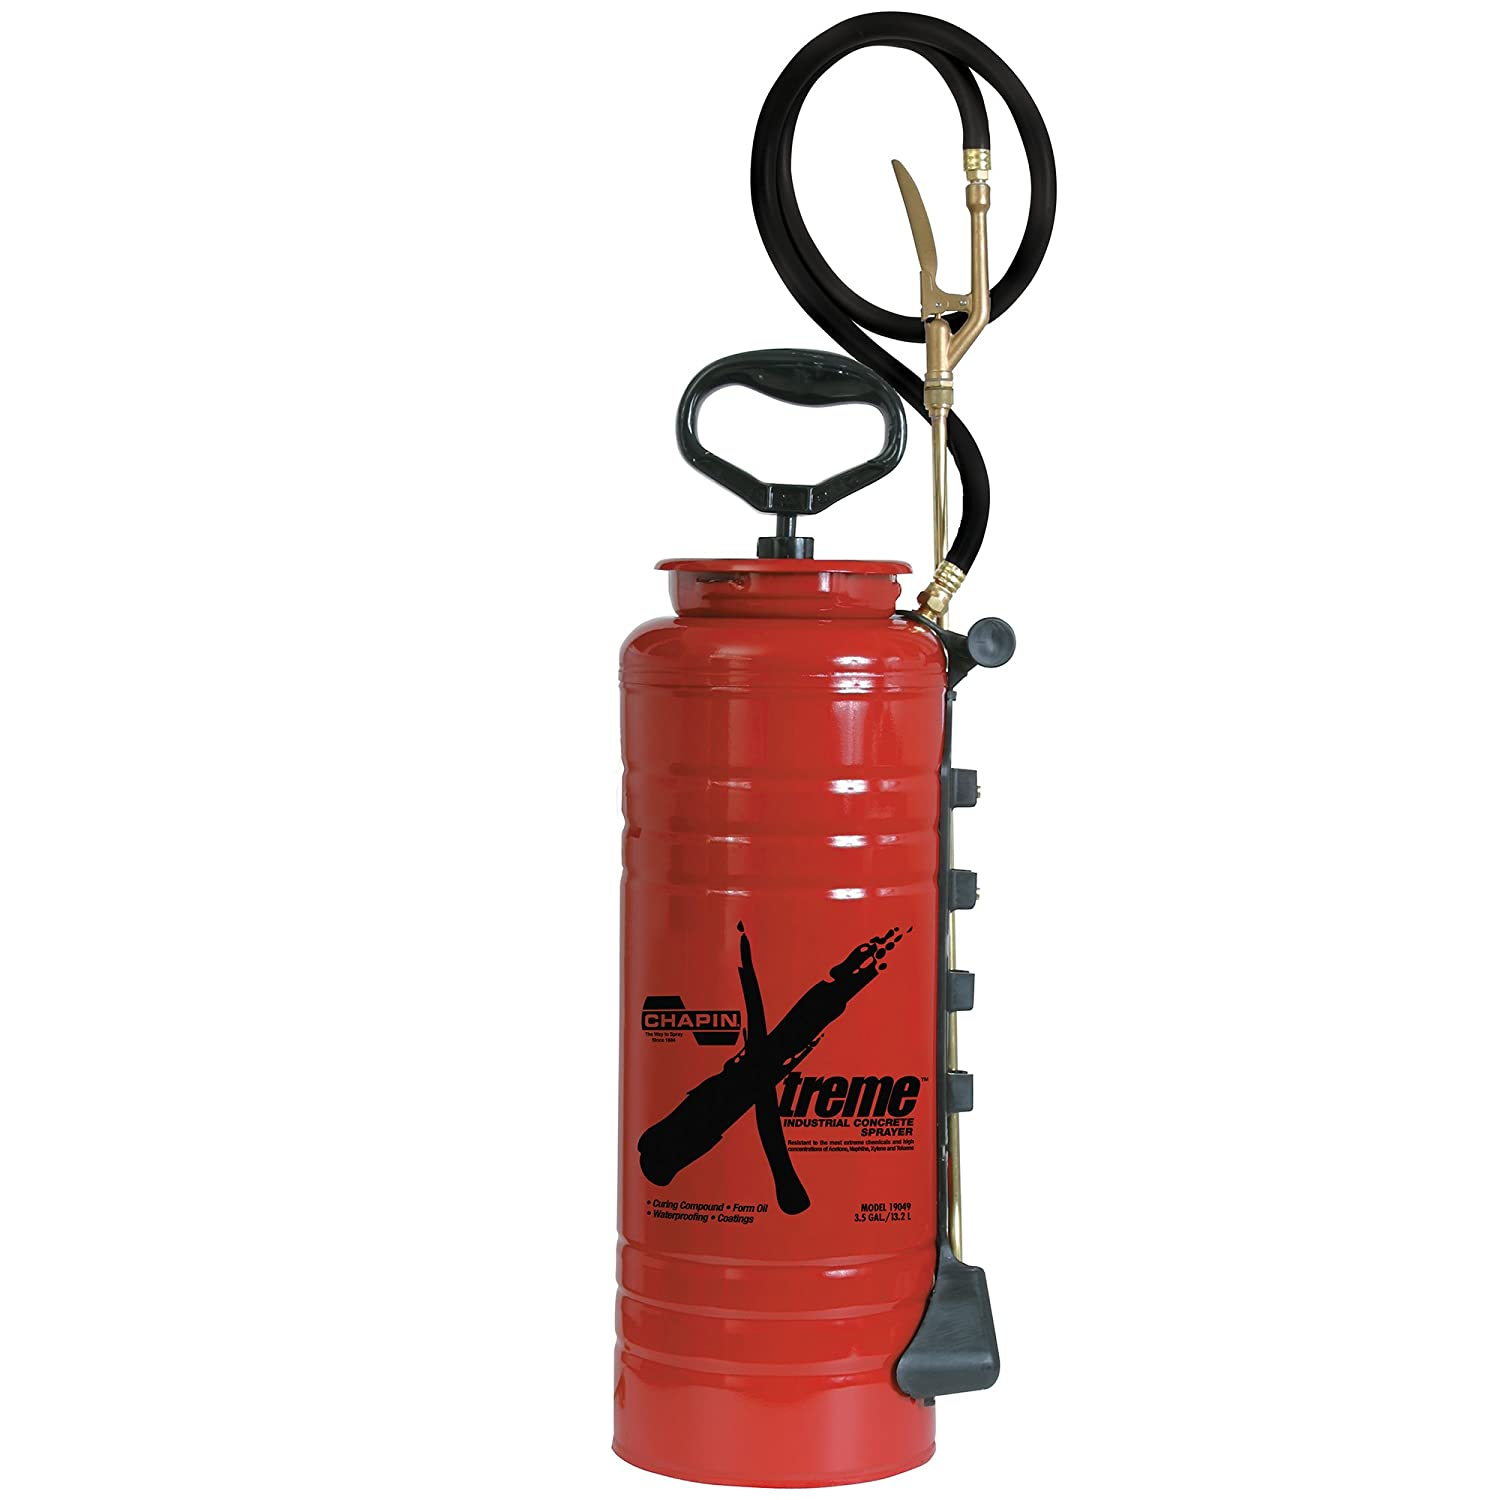 Chapin 19049 Xtreme 3.5 Gallon Industrial Concrete Open Head Sprayer For Curing Compounds